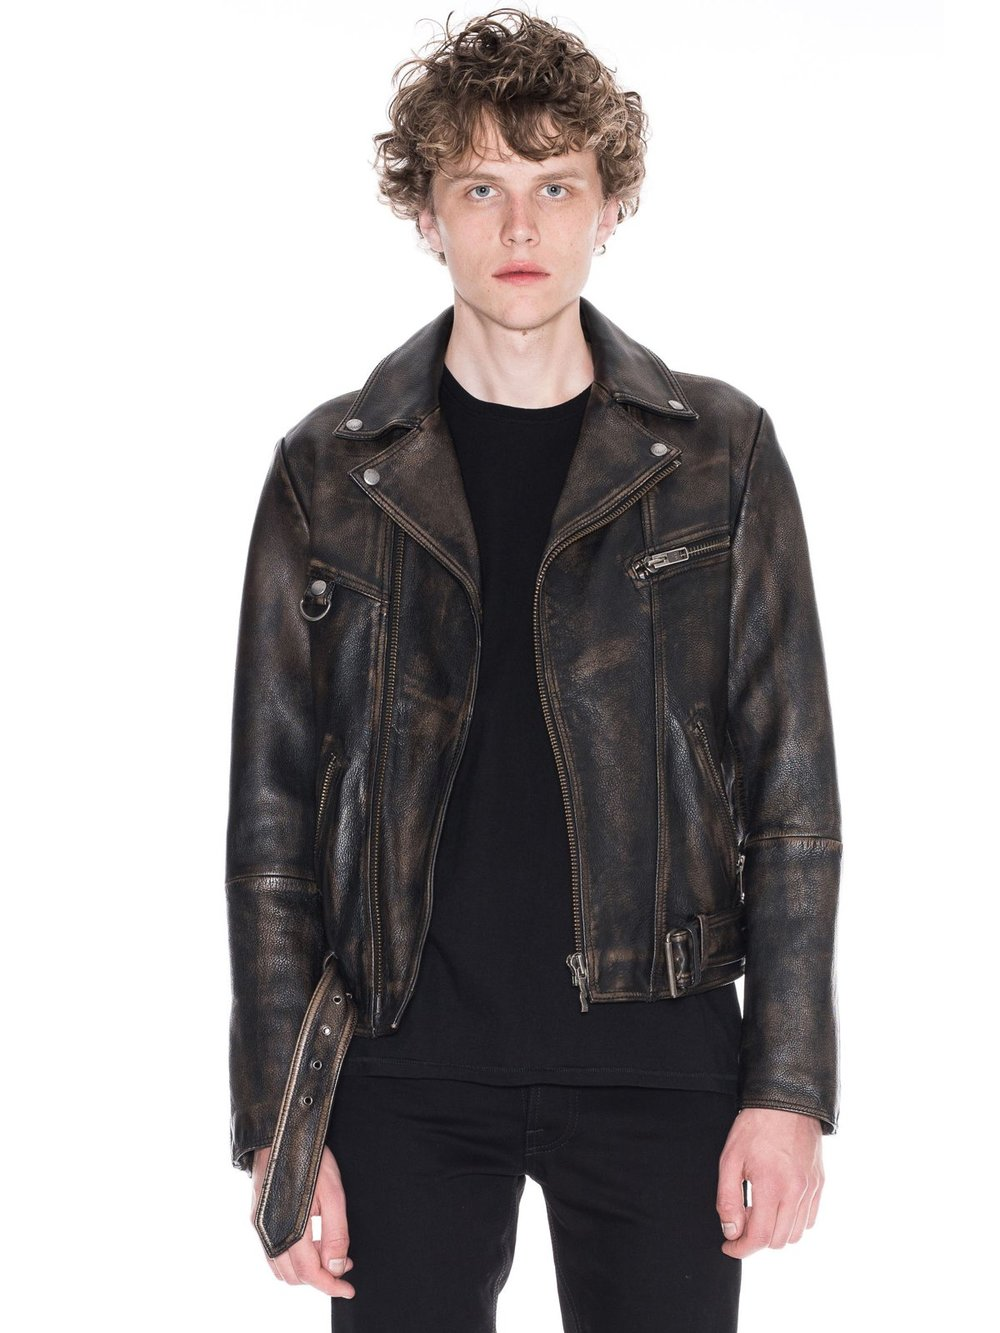 Nudie leather jacket